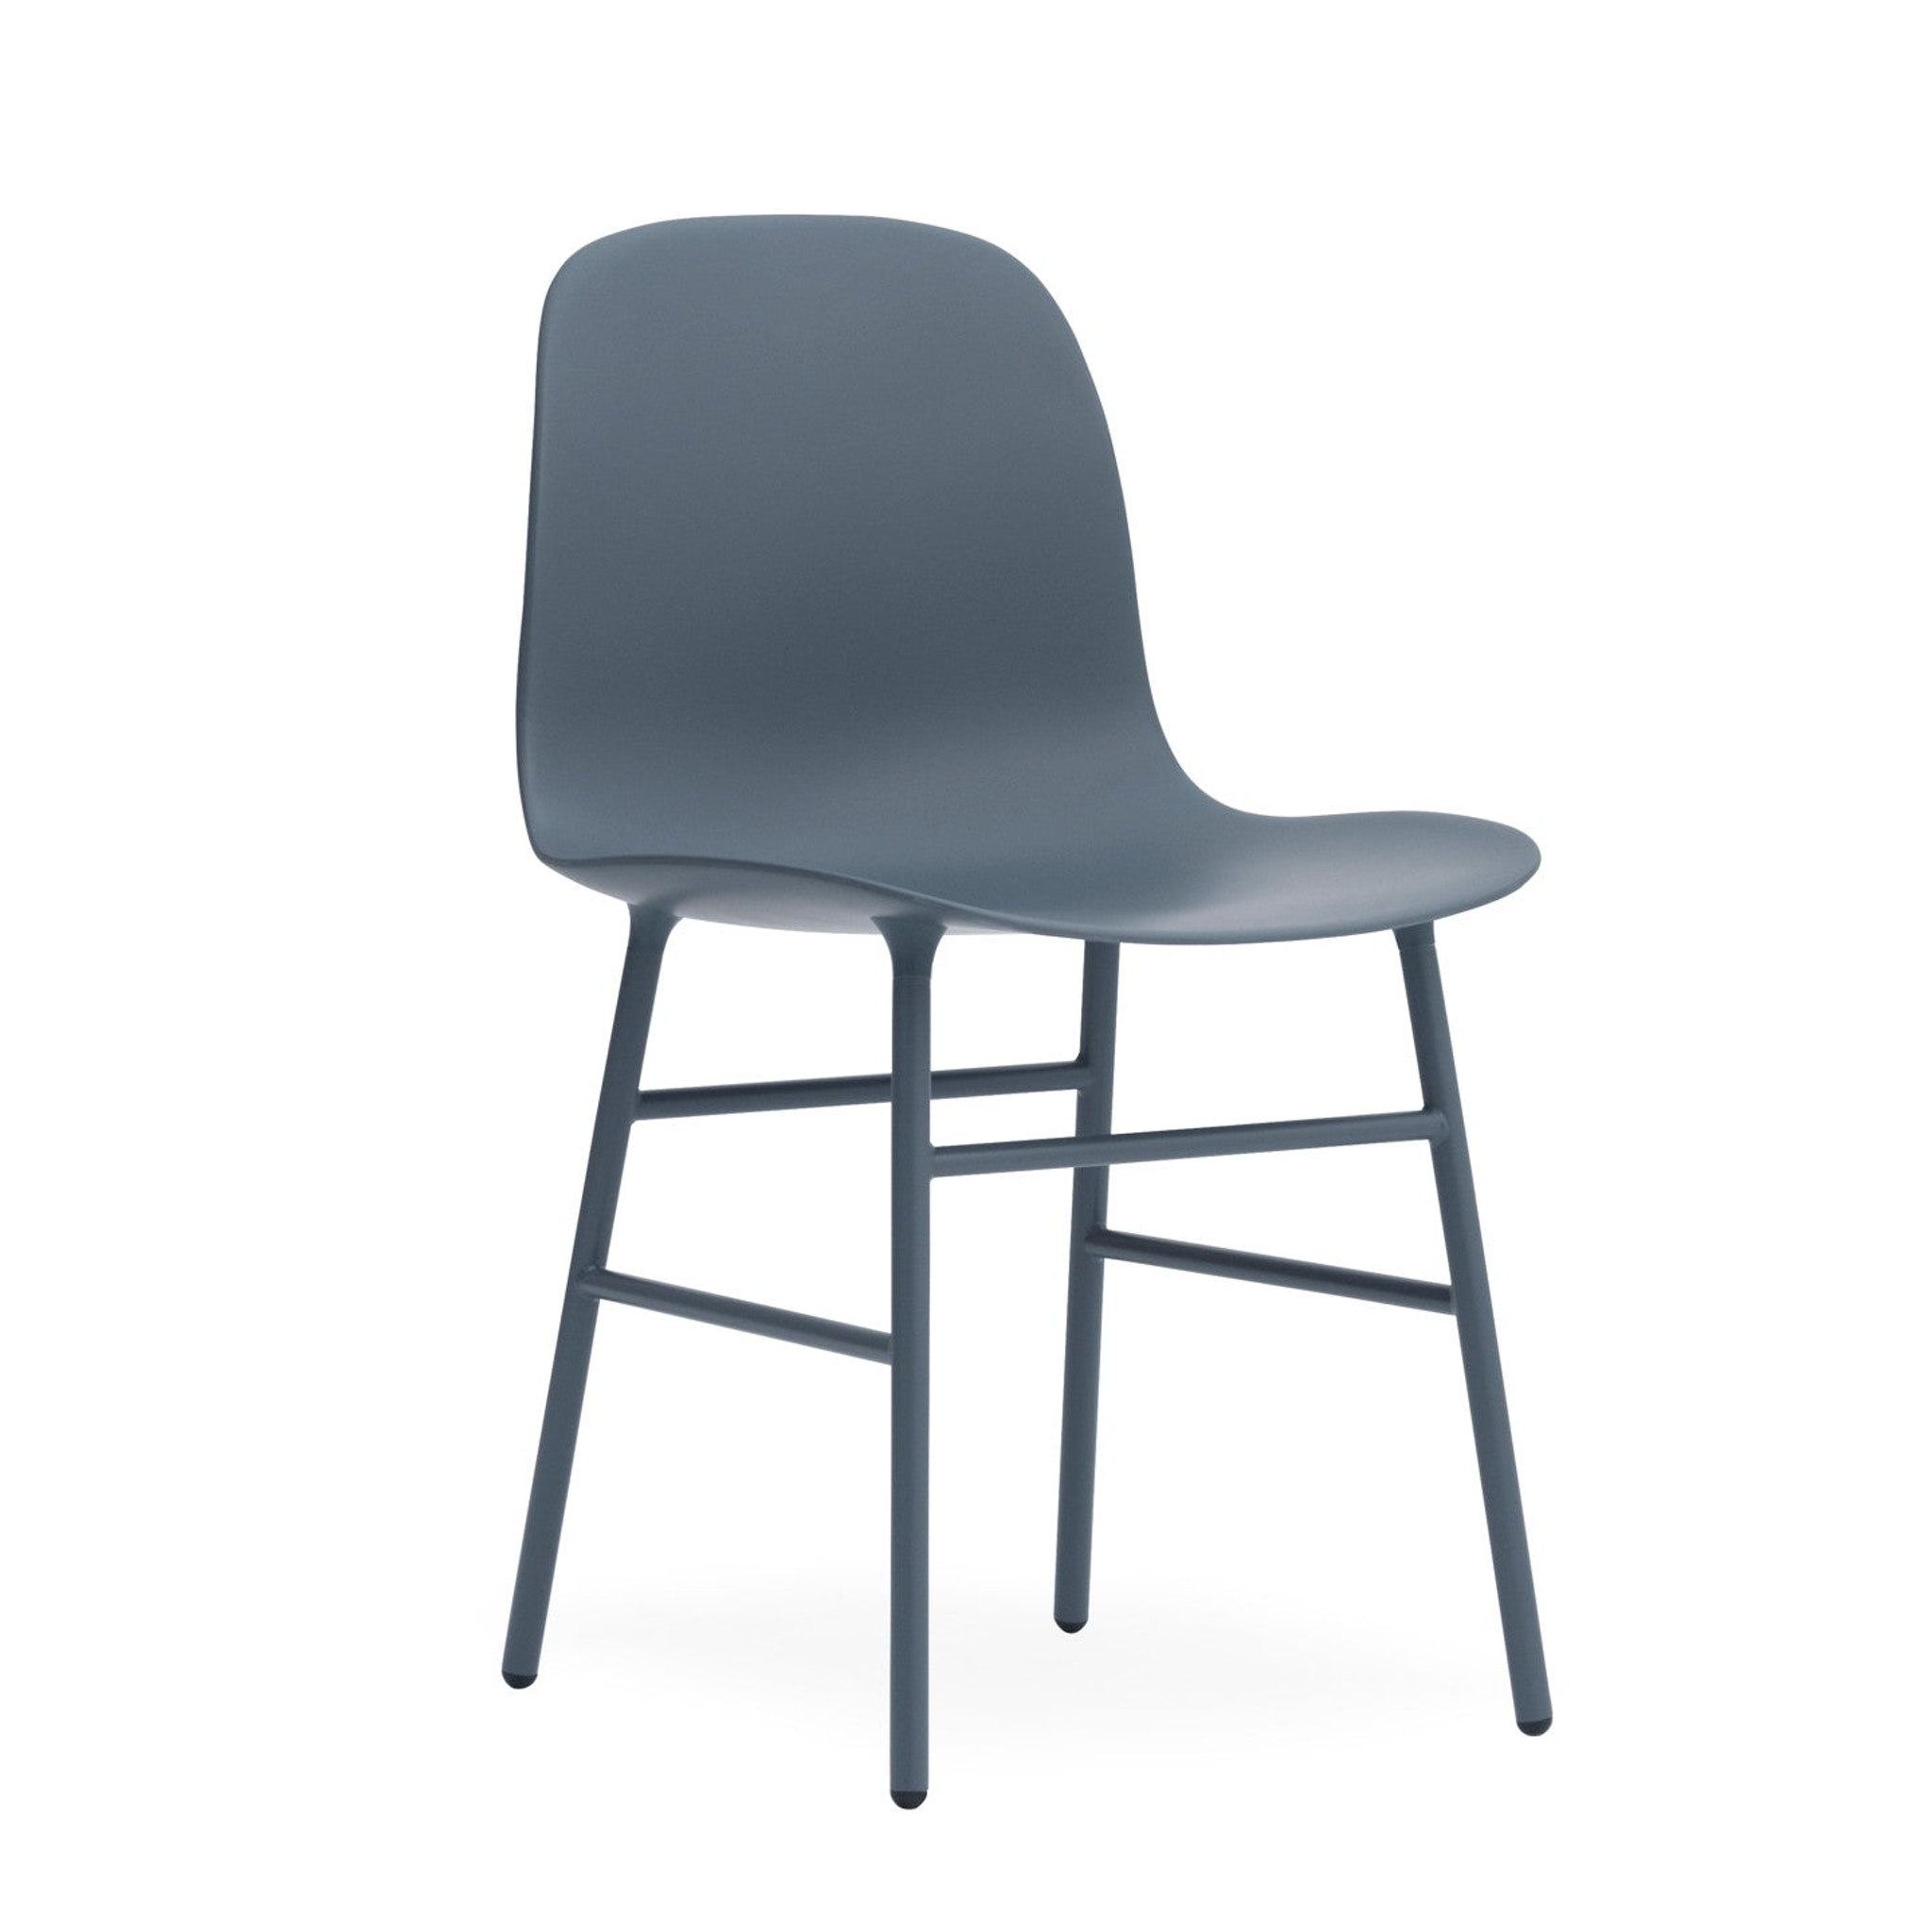 Form Chair with Steel Base by Normann Copenhagen